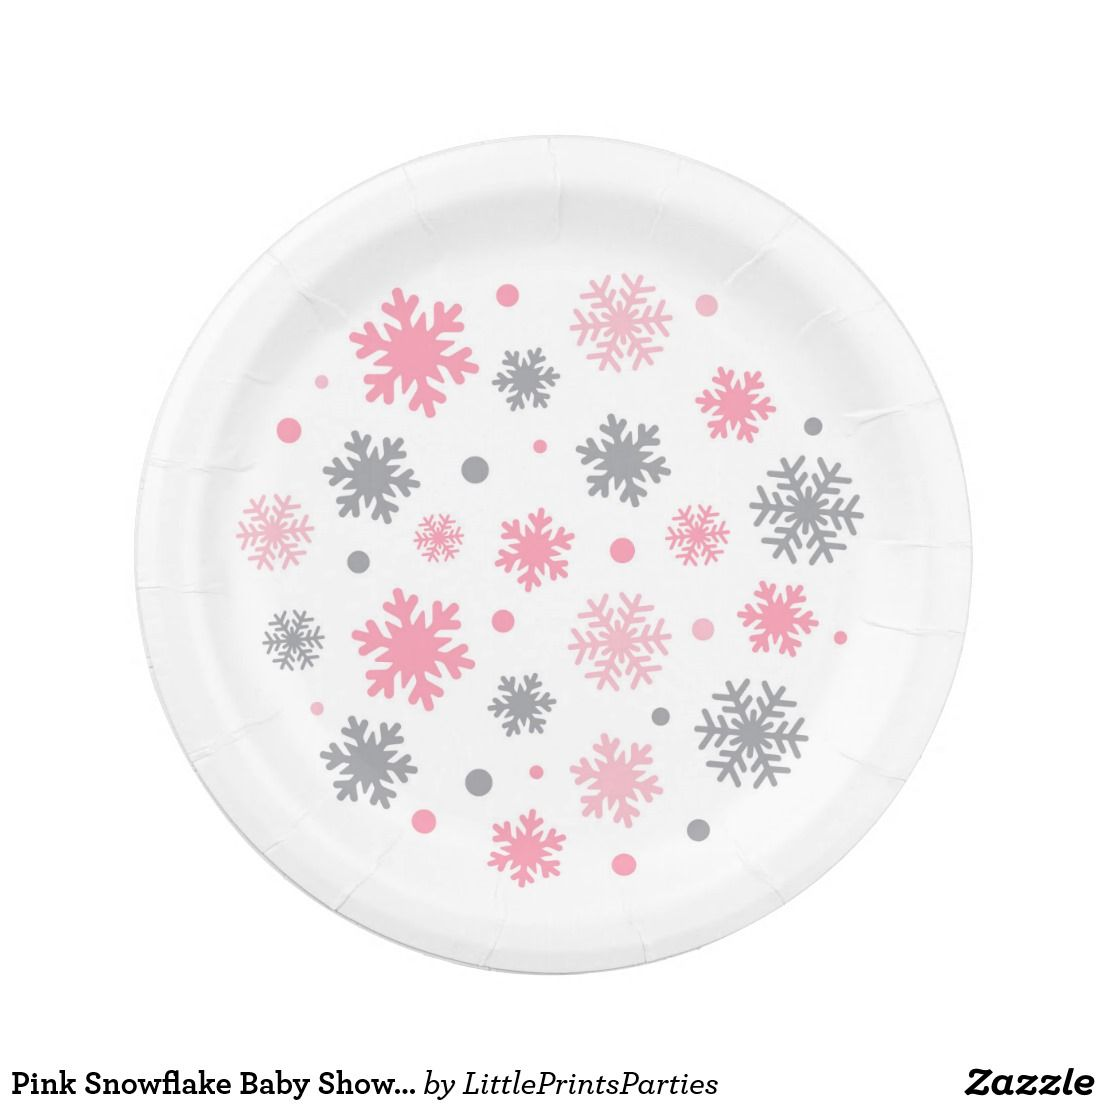 Pink Snowflake Baby Shower Paper Plate This modern design features snowflakes in pink and grey  sc 1 st  Pinterest & Pink Snowflake Baby Shower Paper Plate | Snowflake baby shower and ...